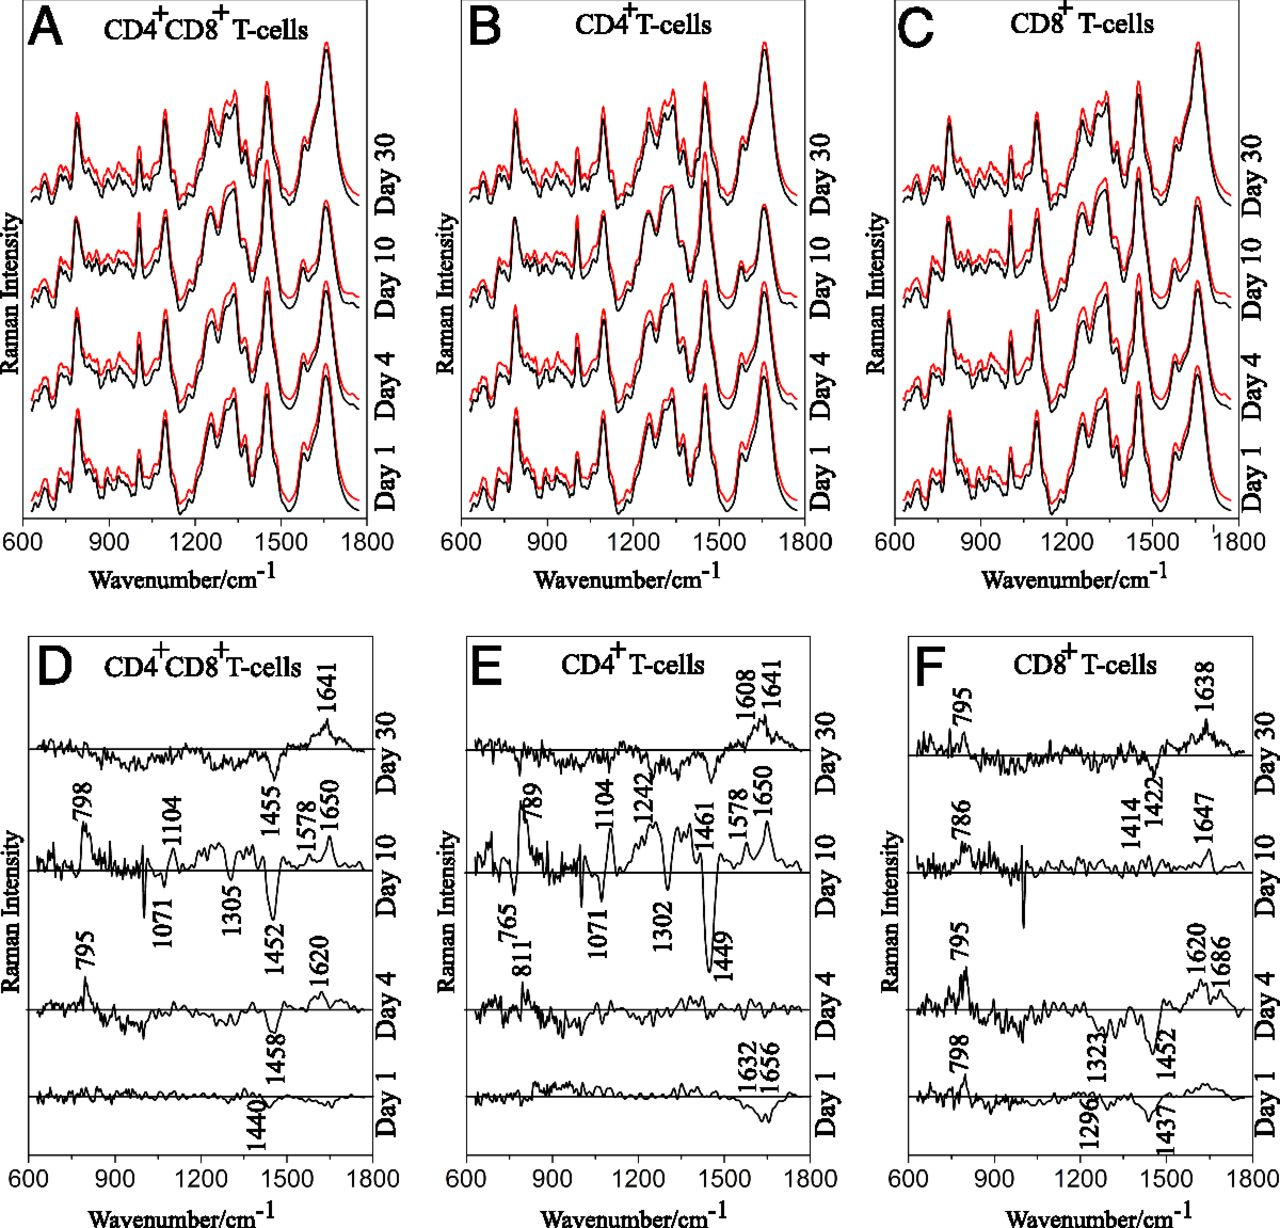 Raman Spectroscopy Follows Time-Dependent Changes in T